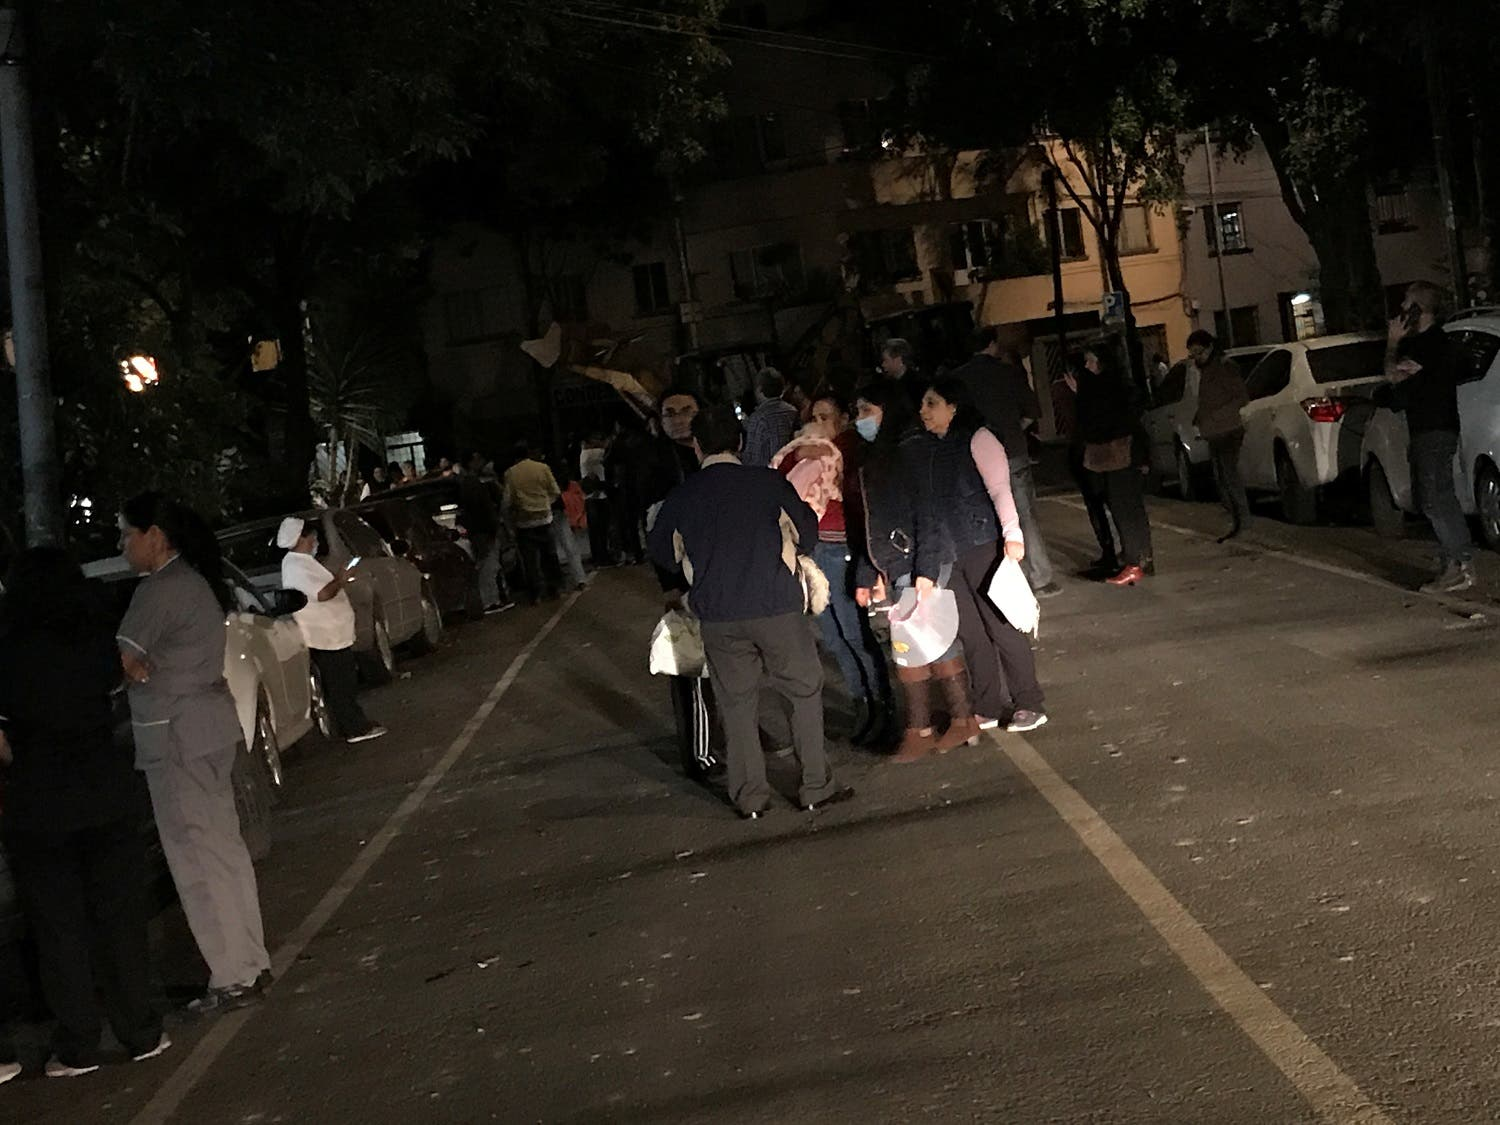 Residents rushed to the streets after an earthquake in Mexico City on Thursday night. (Reuters)